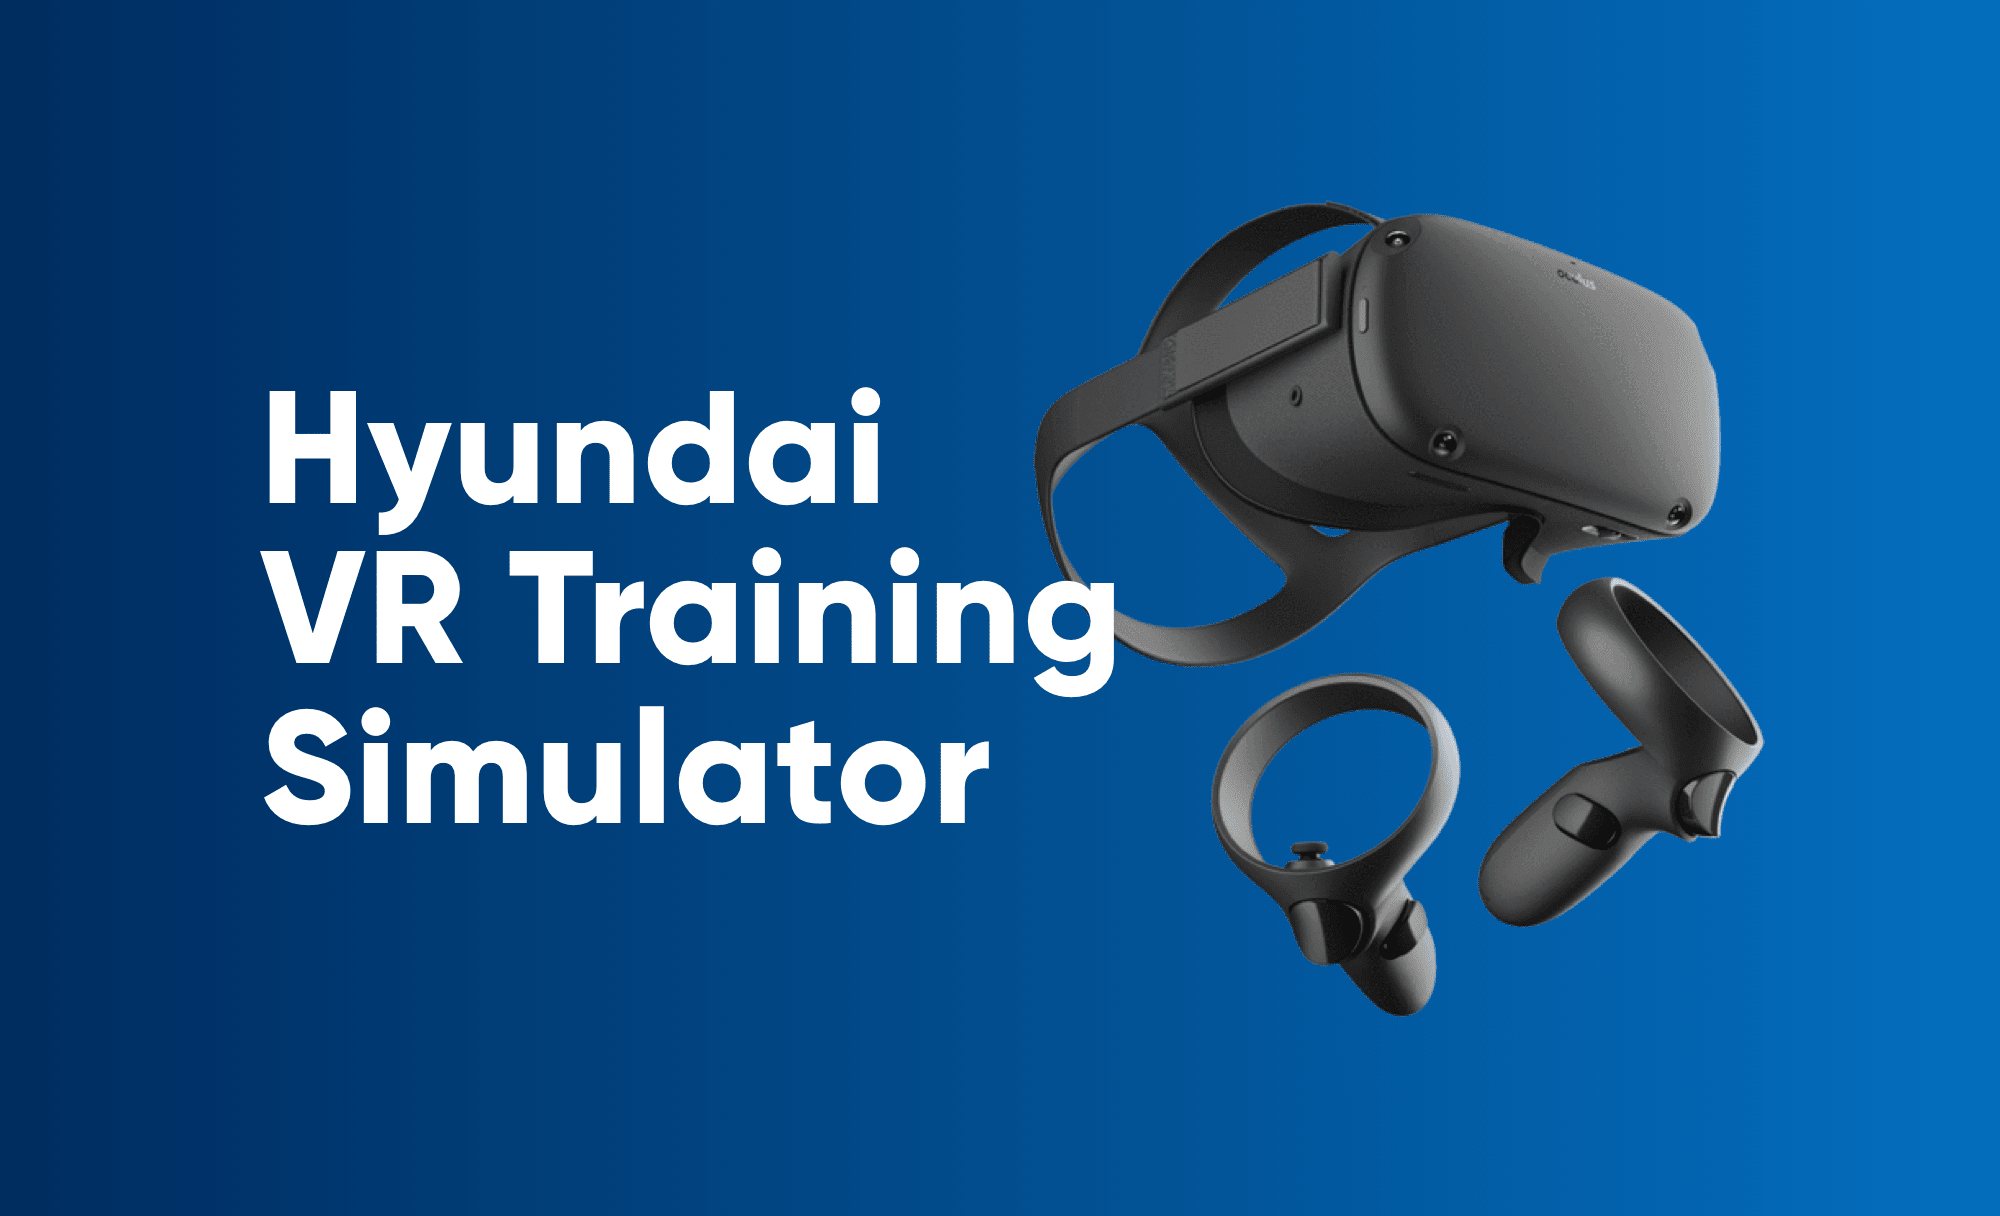 Hyundai VR Training